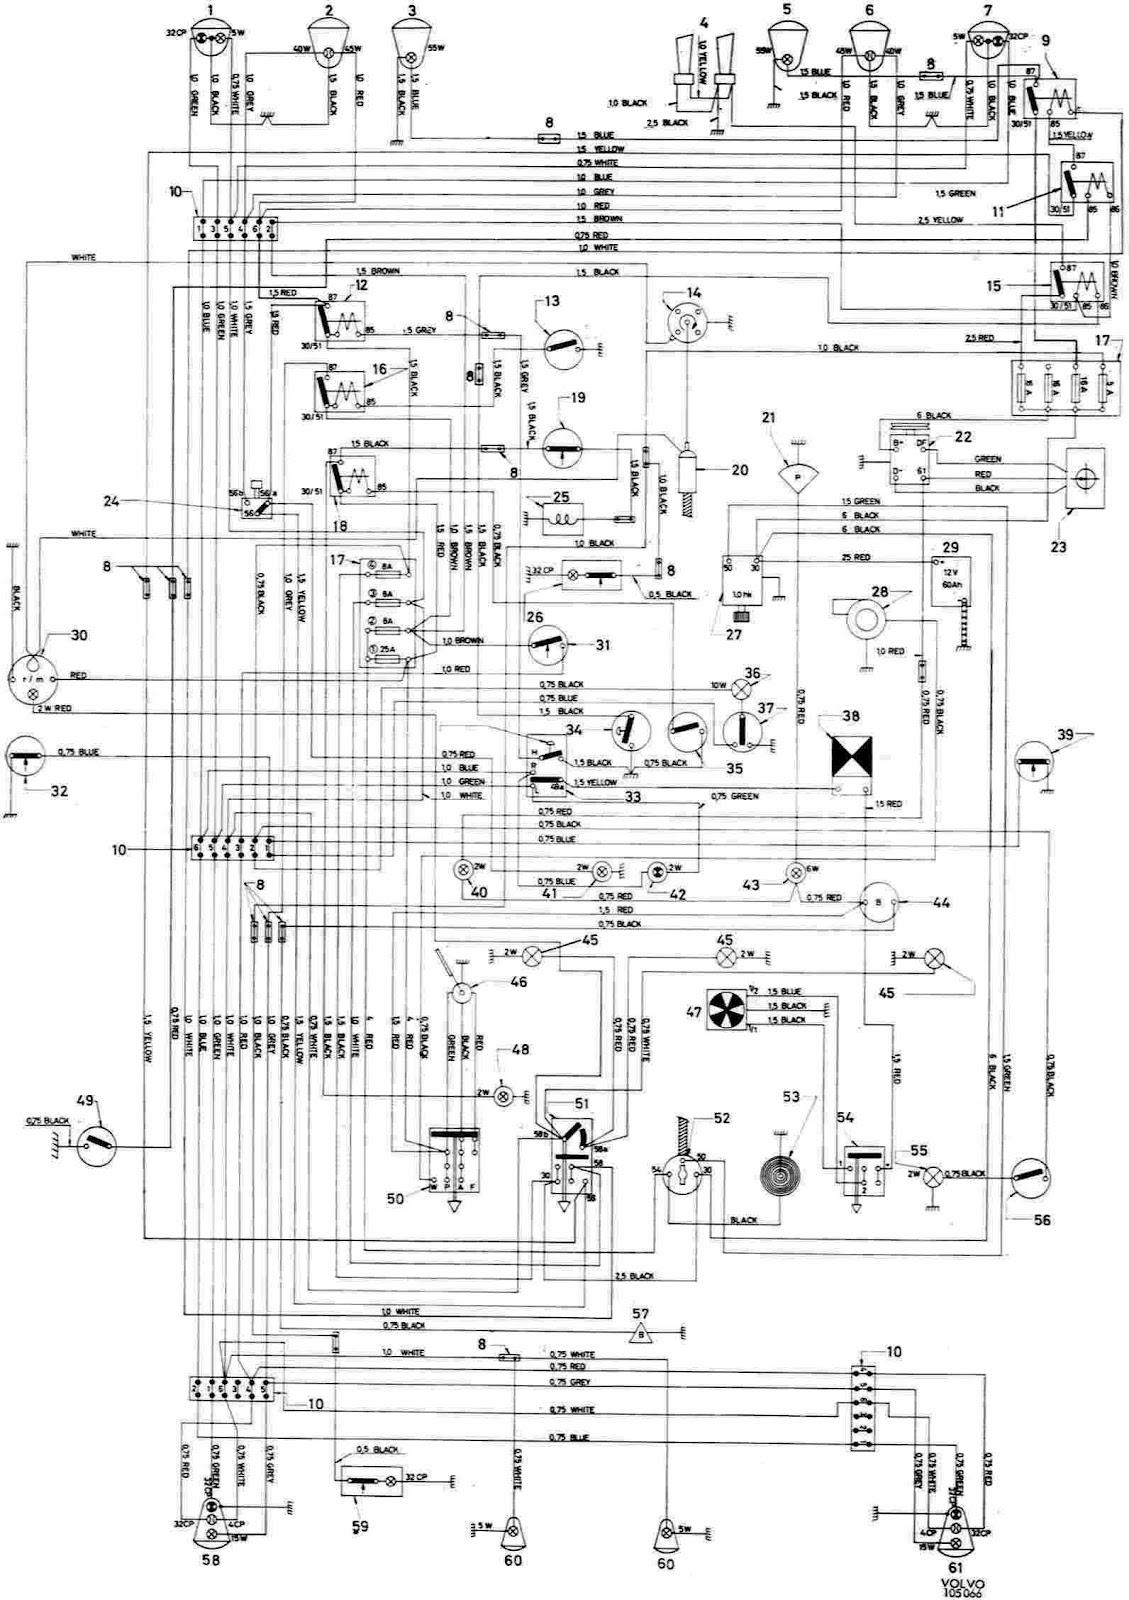 Wiring Diagram Volvo 240 Wagon | Wiring Diagram on 1984 nissan pickup wiring diagram, 1984 dodge ramcharger wiring diagram, 1984 jeep cj7 wiring diagram, 1984 ford bronco wiring diagram, 1984 jeep cherokee wiring diagram, 1984 jaguar xj6 wiring diagram, 1984 suzuki samurai wiring diagram, 1984 porsche 928 wiring diagram, 1984 cadillac eldorado wiring diagram,